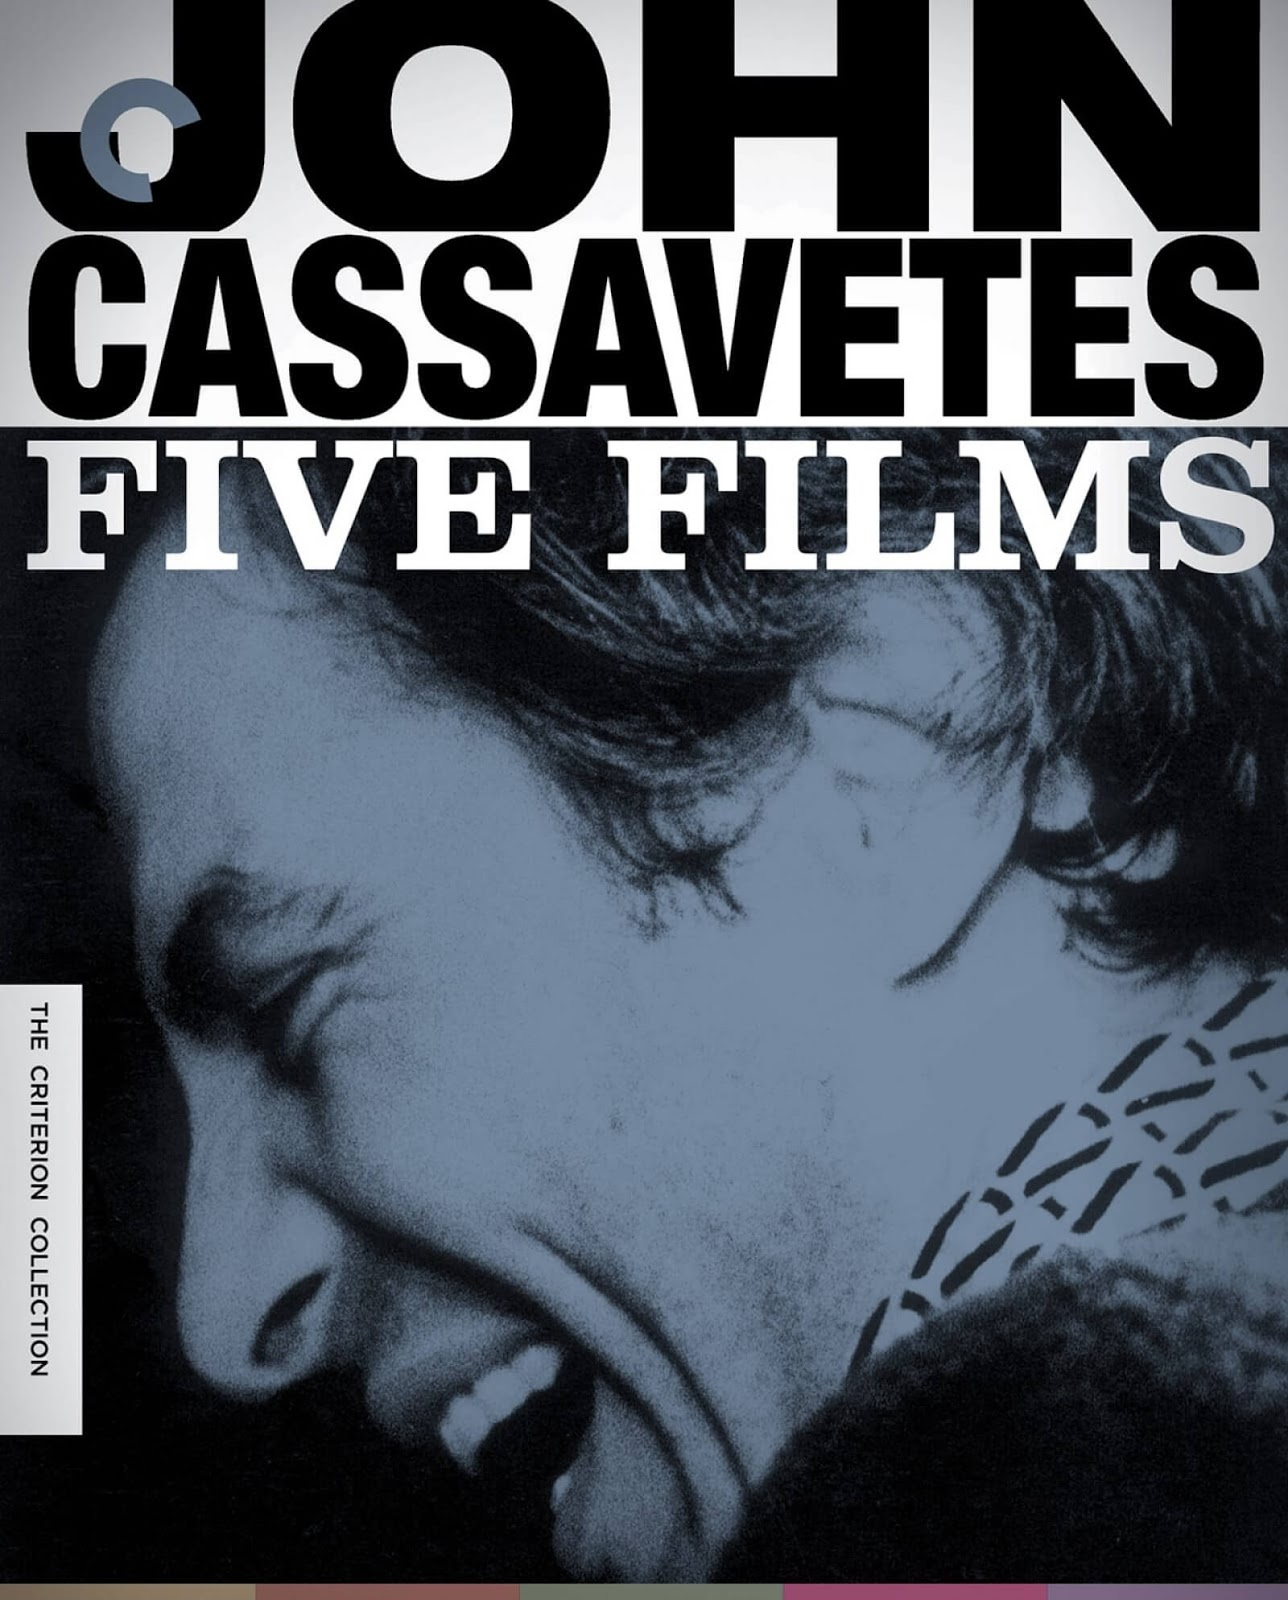 Five Films of John Cassavetes collection cover.